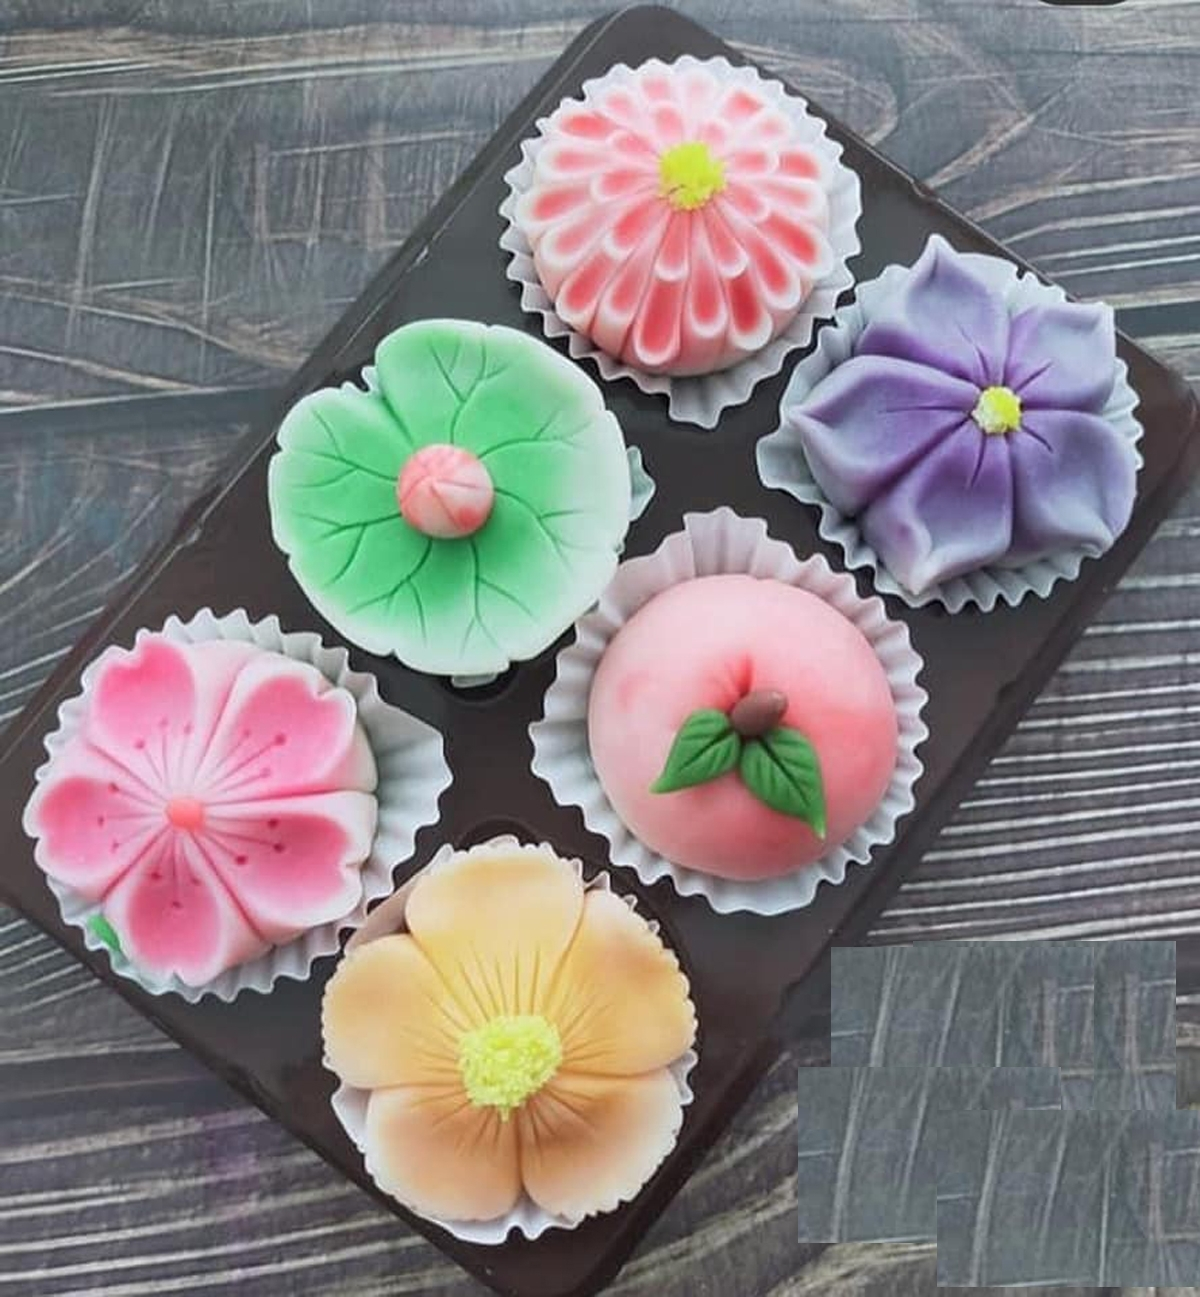 Japanese style cakes attract customers this year, although they are expensive.